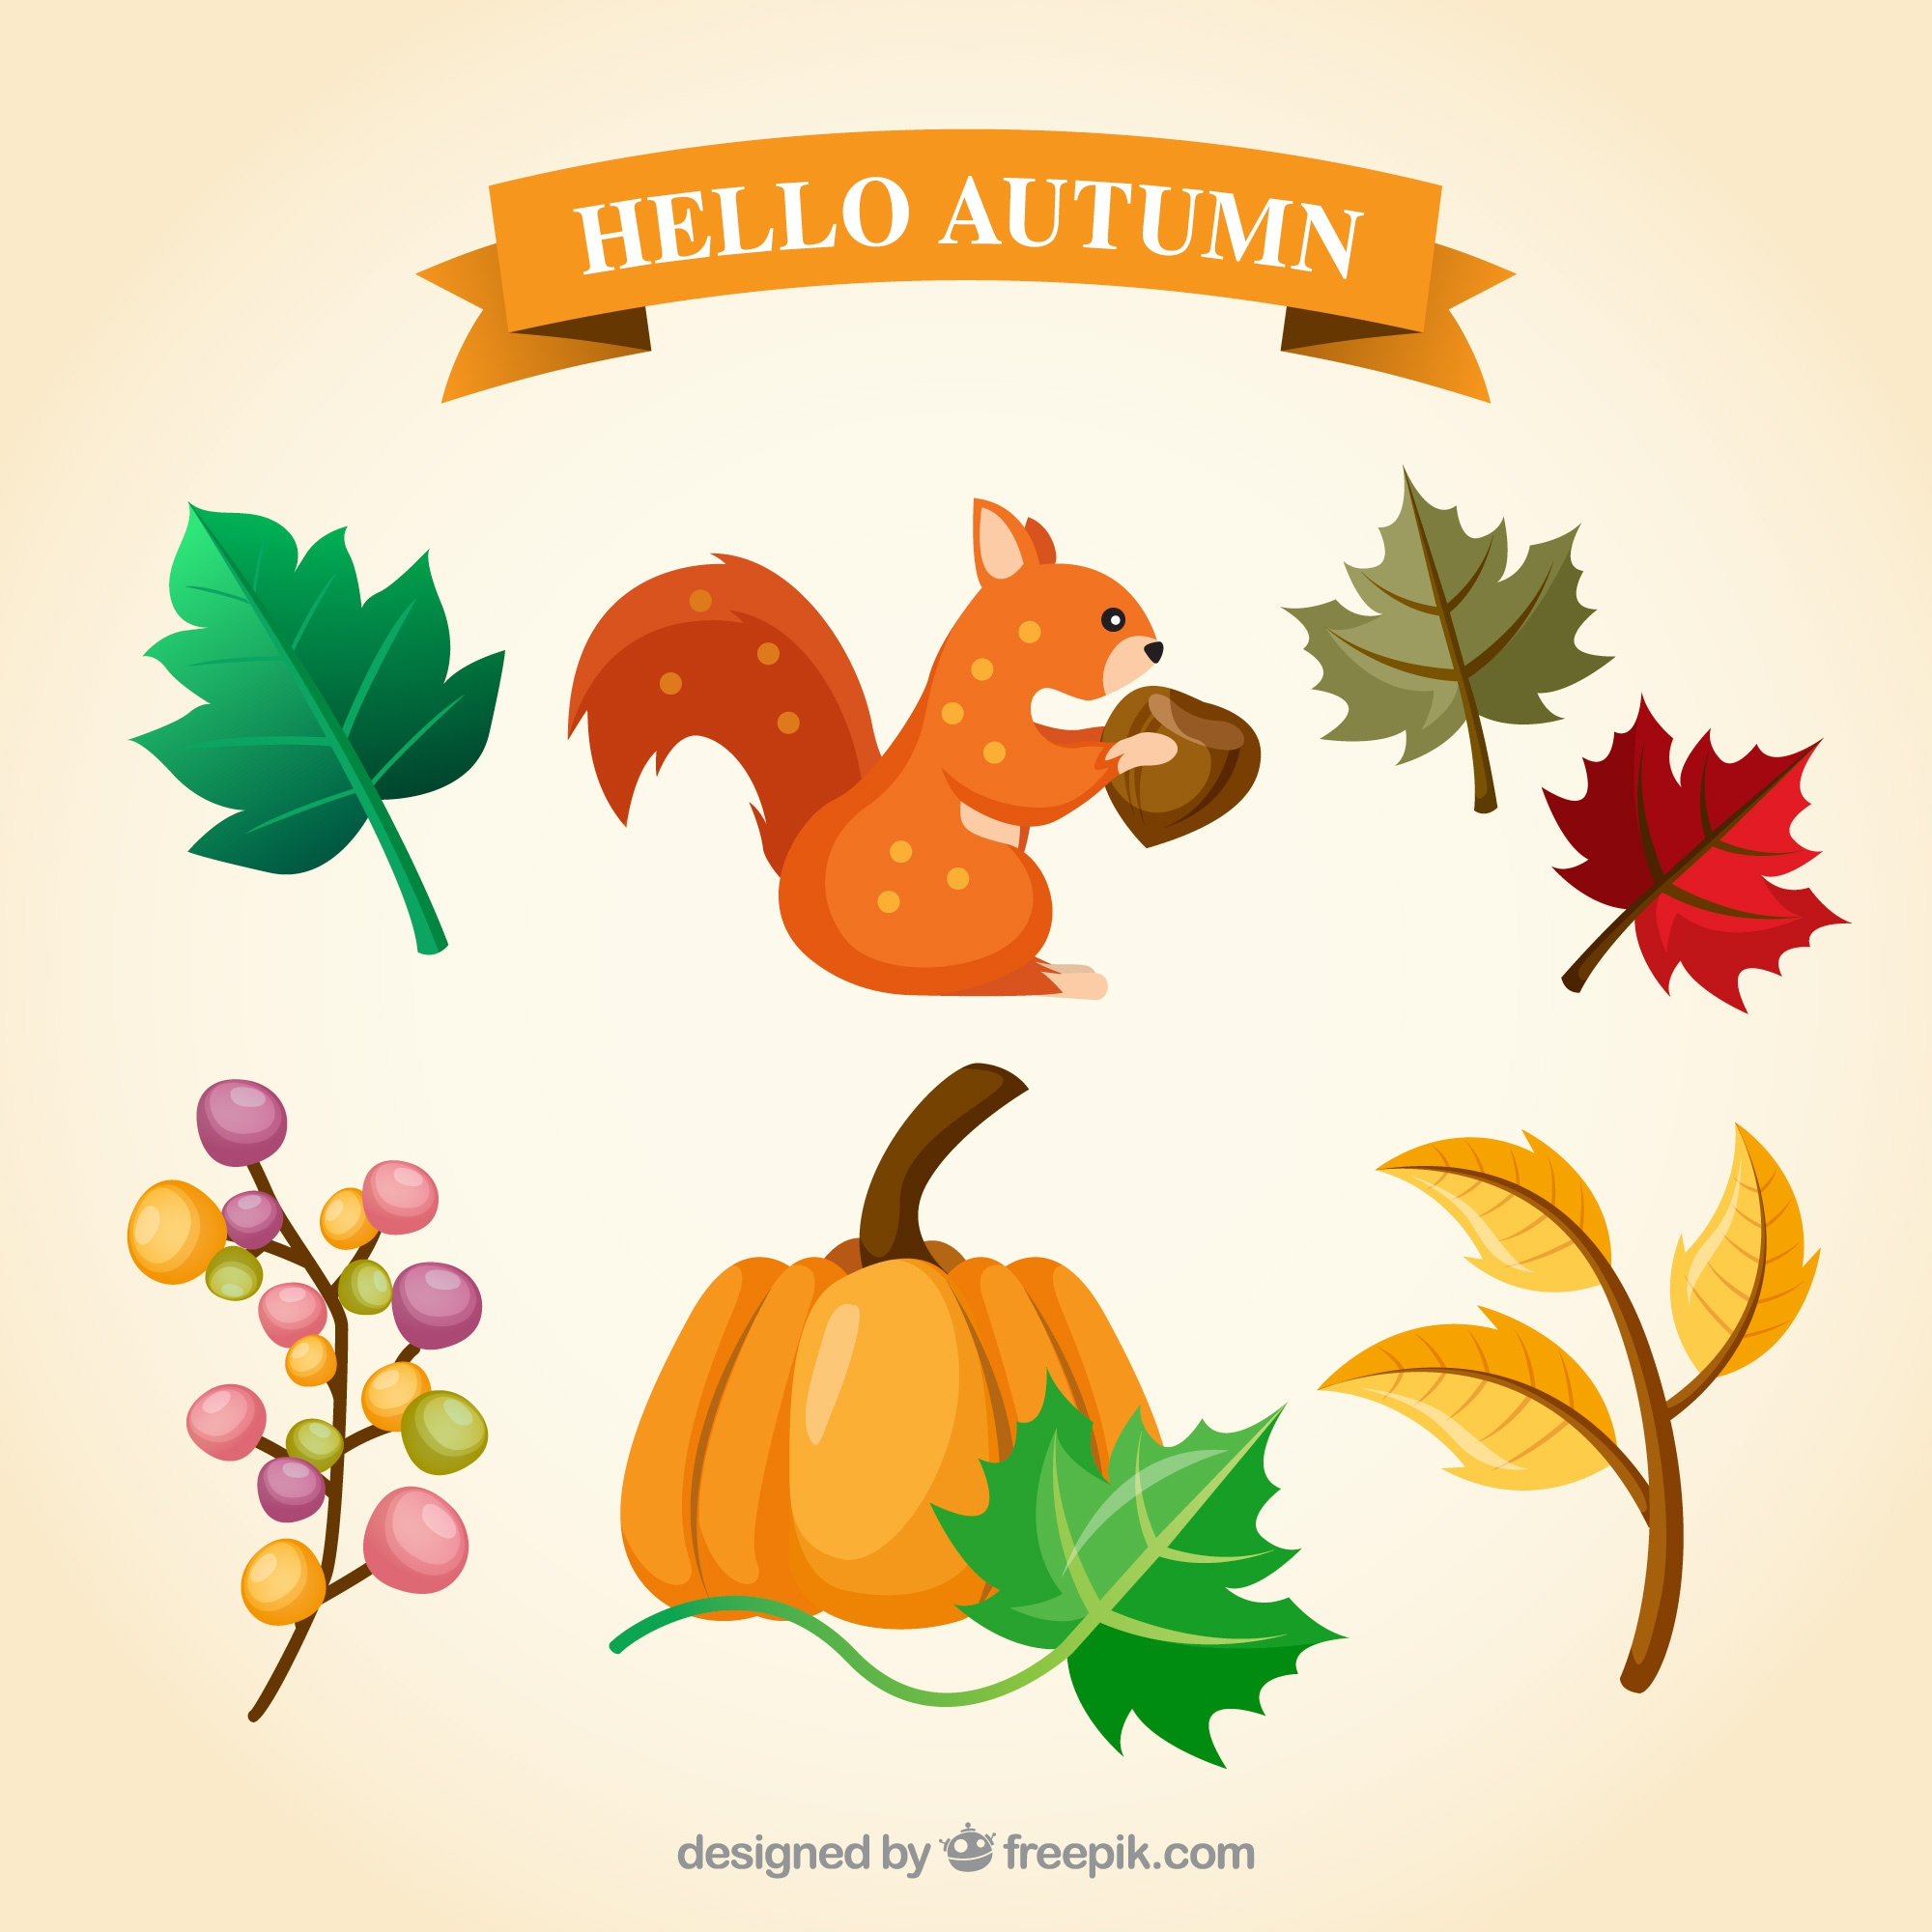 Pretty squirrel and other natural elements of autumn